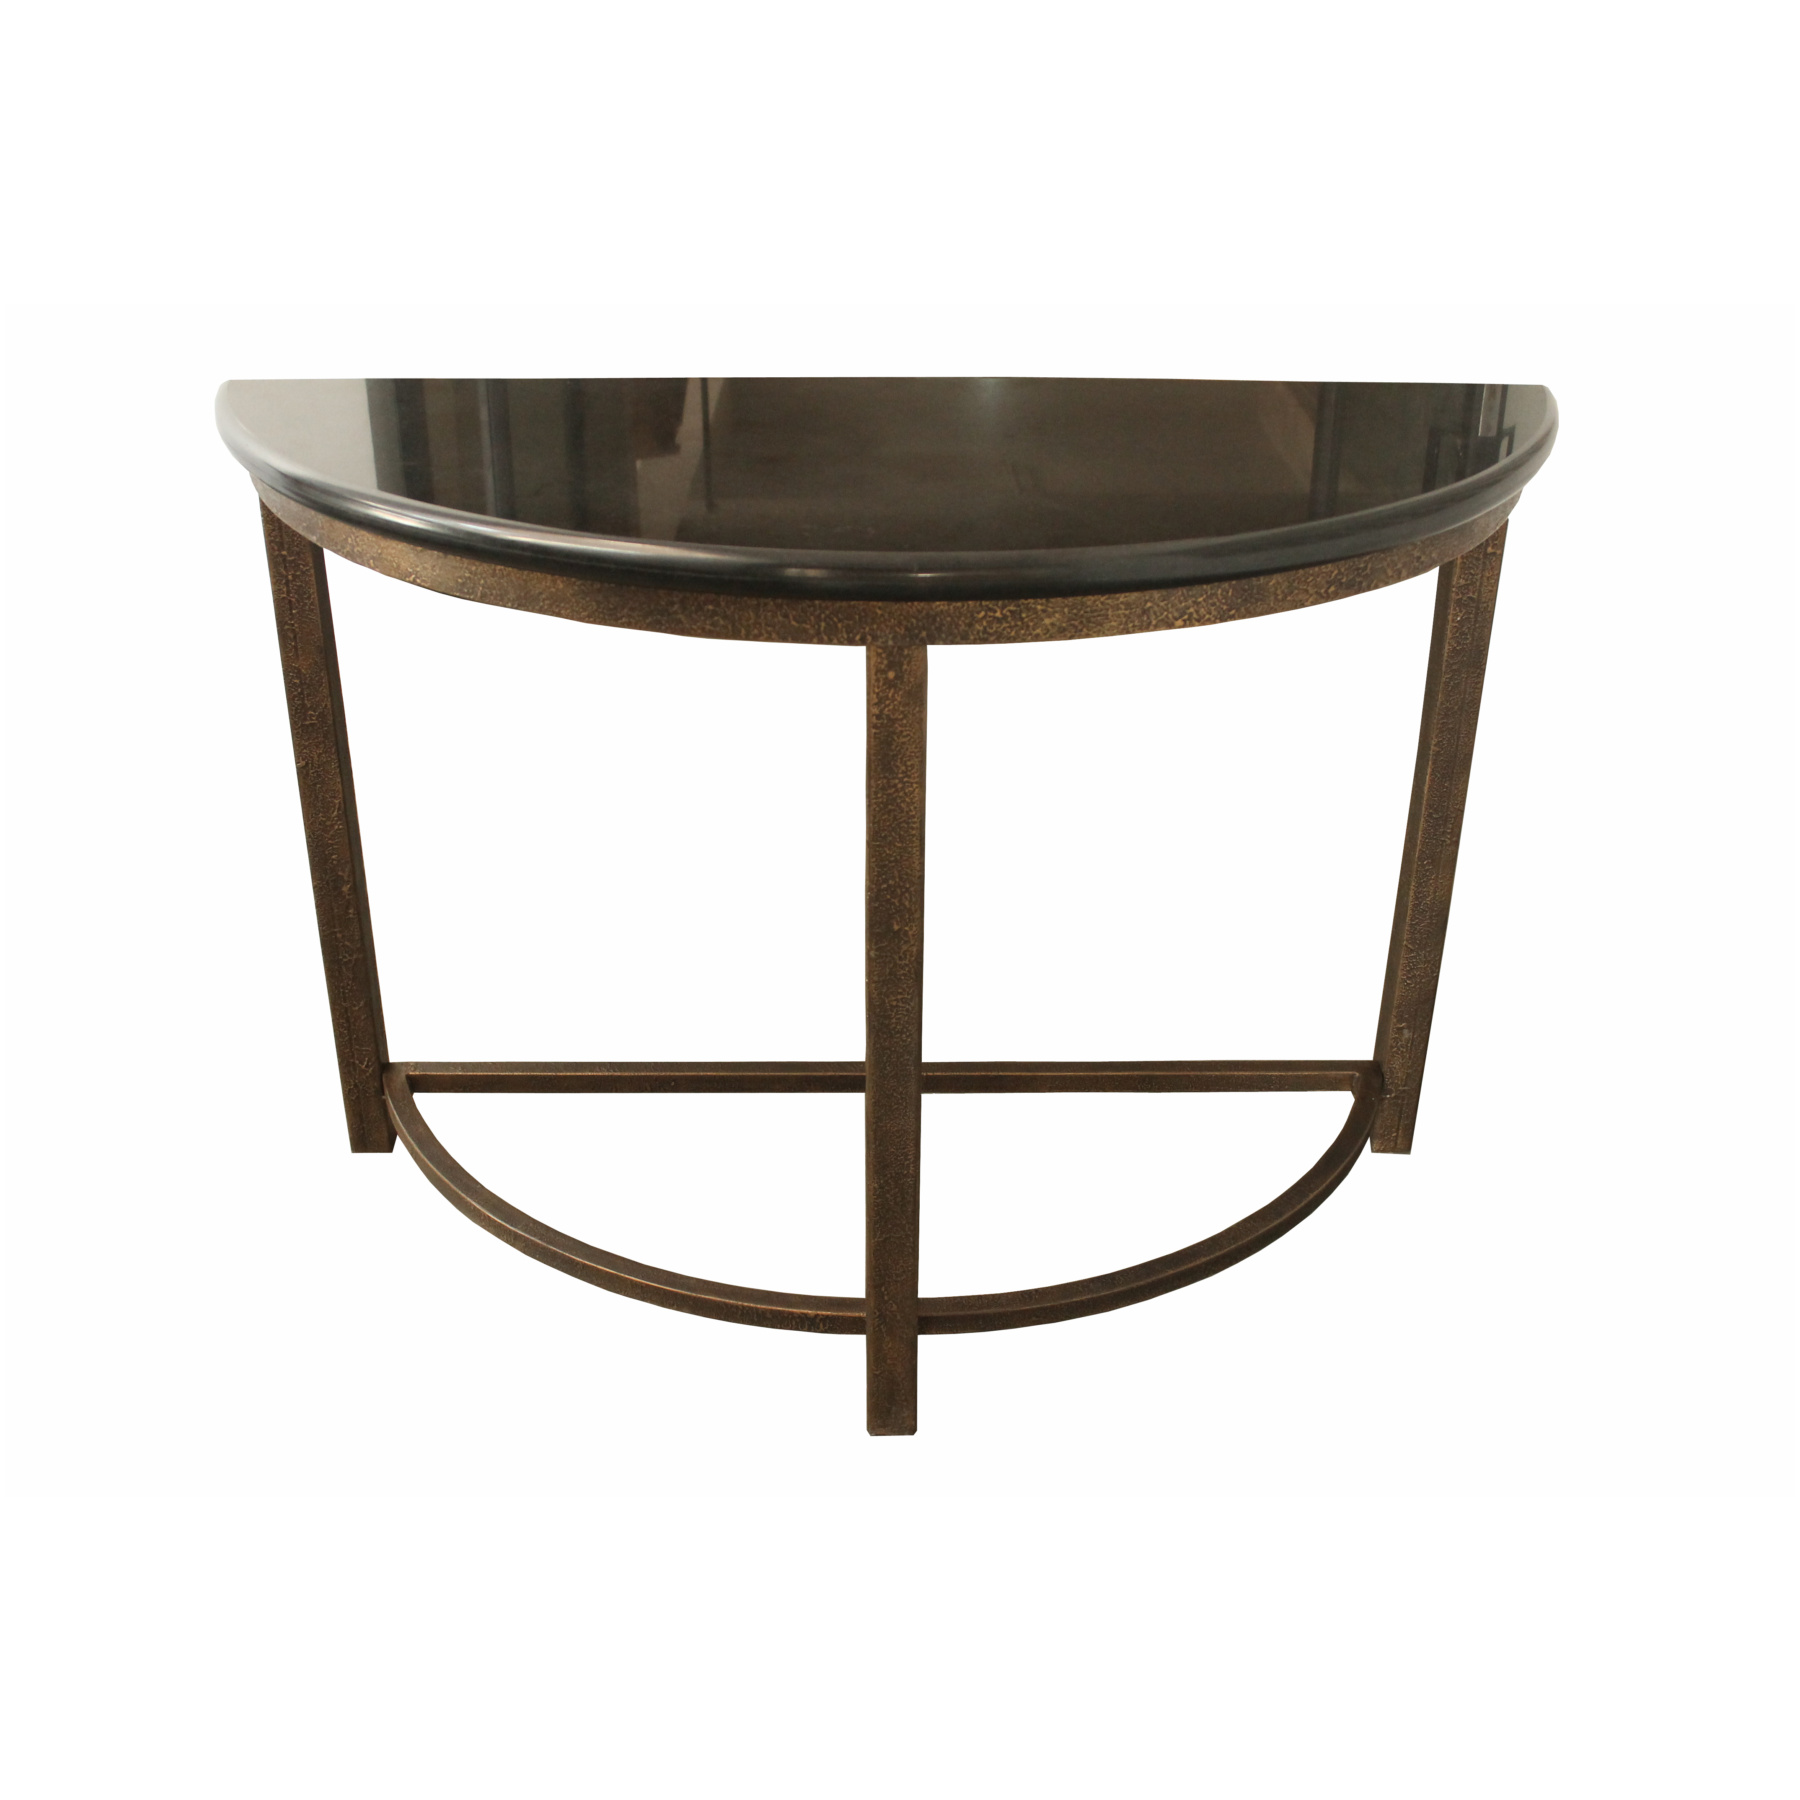 designe gallerie half round metal console accent table grey placemats small black occasional bar high dining rustic entry slim side ikea file box very white razer mouse ouroboros